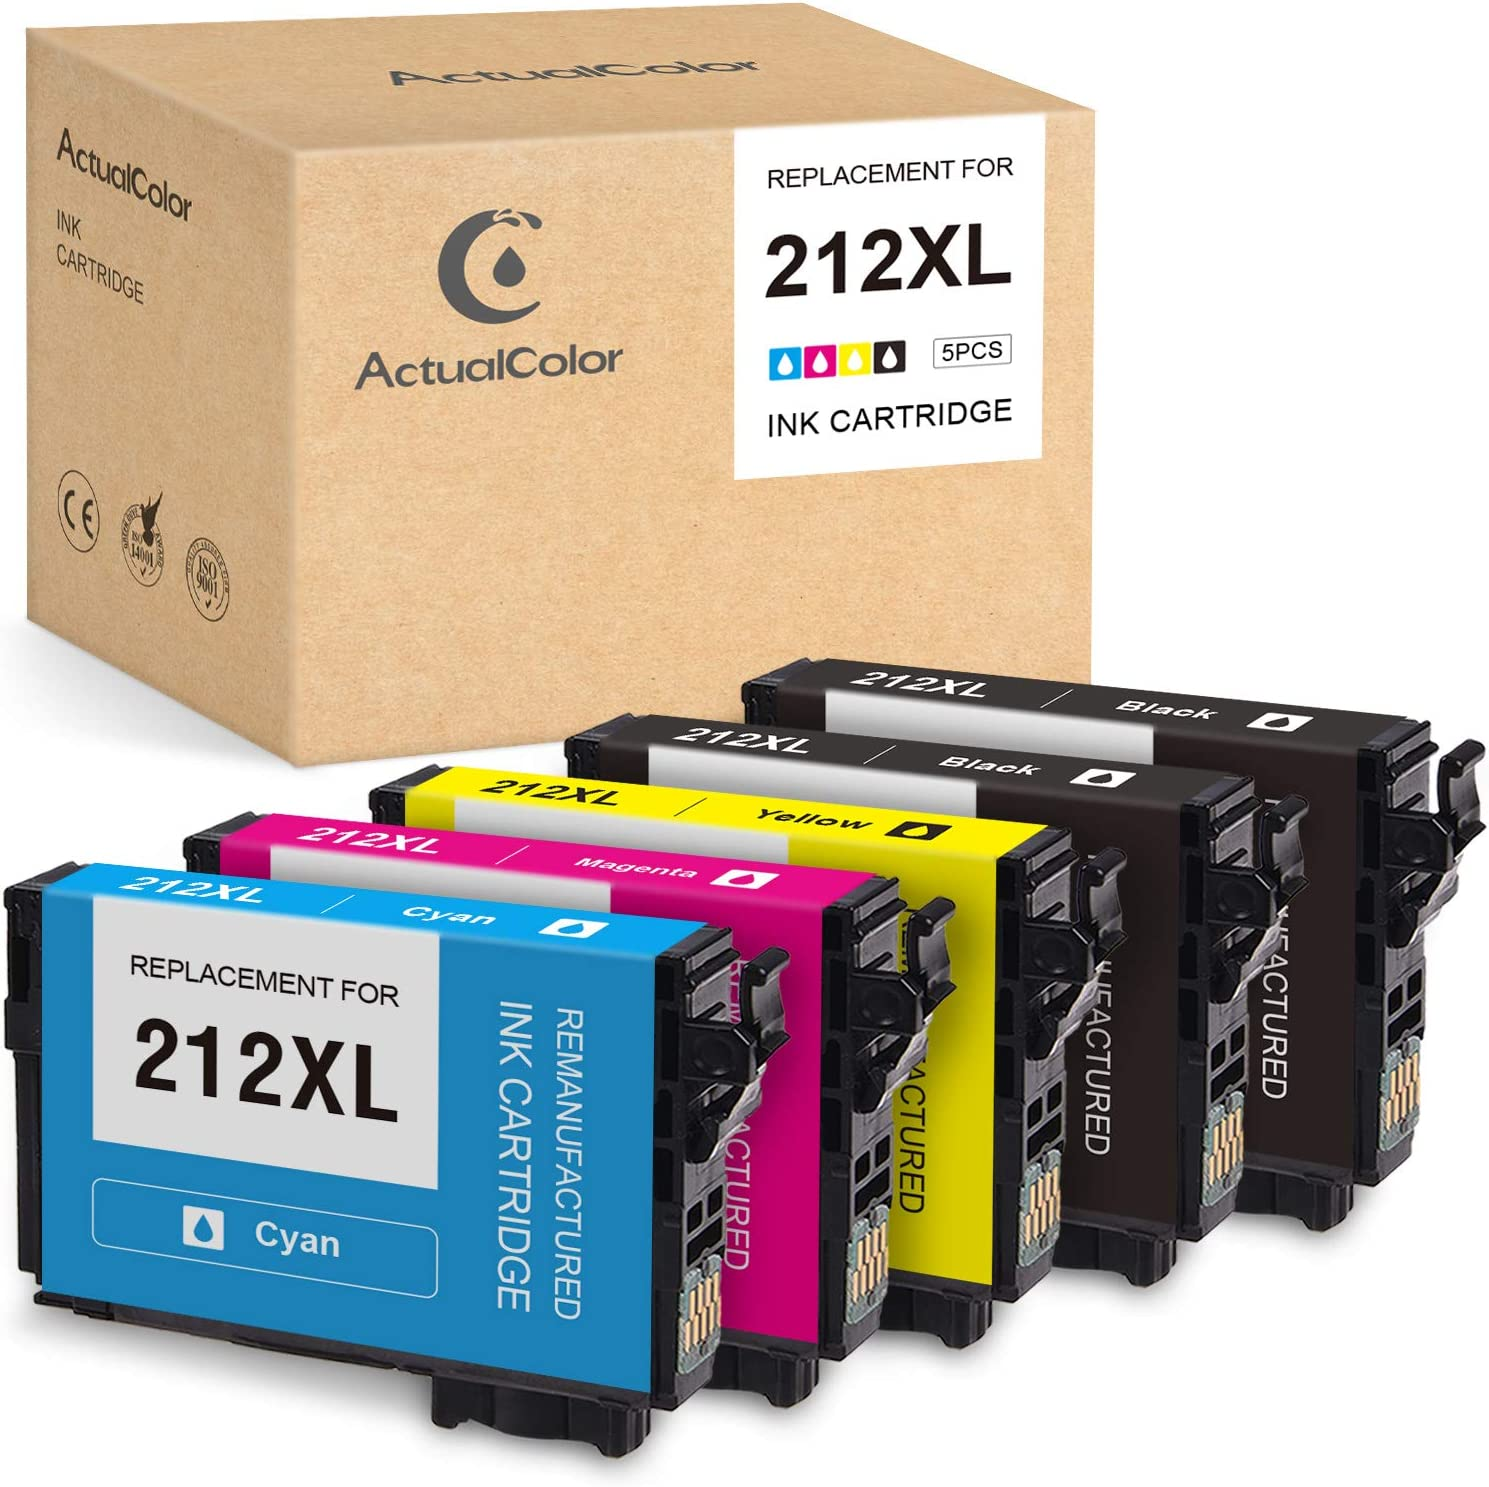 ActualColor C Remanufactured Ink Cartridge Replacement for Epson 212XL T212XL 212 XL for Expression Home XP-4100 XP-4105 Workforce WF-2850 WF-2830 (2 Black, 1 Cyan, 1 Magenta, 1 Yellow, 5-Pack)